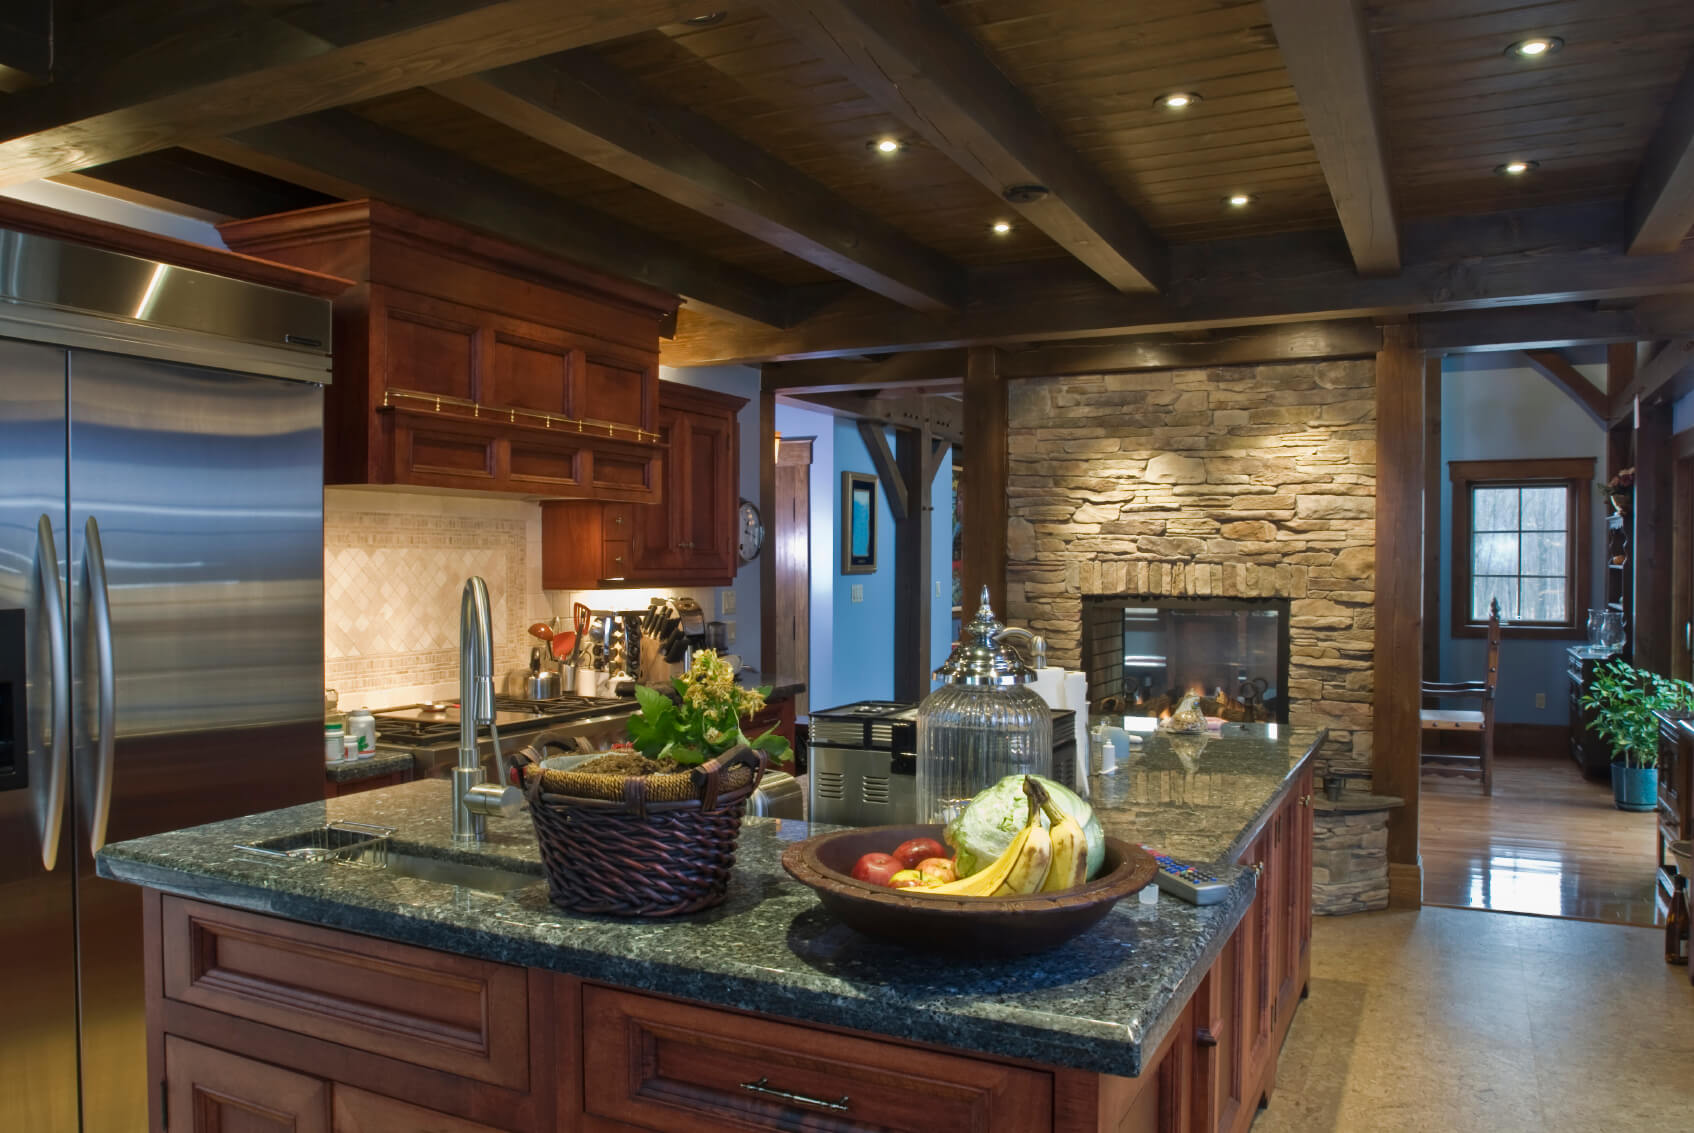 dark kitchen cabinets cherry kitchen cabinets Rustic look kitchen features brick pass through fireplace under dark wood exposed beams with